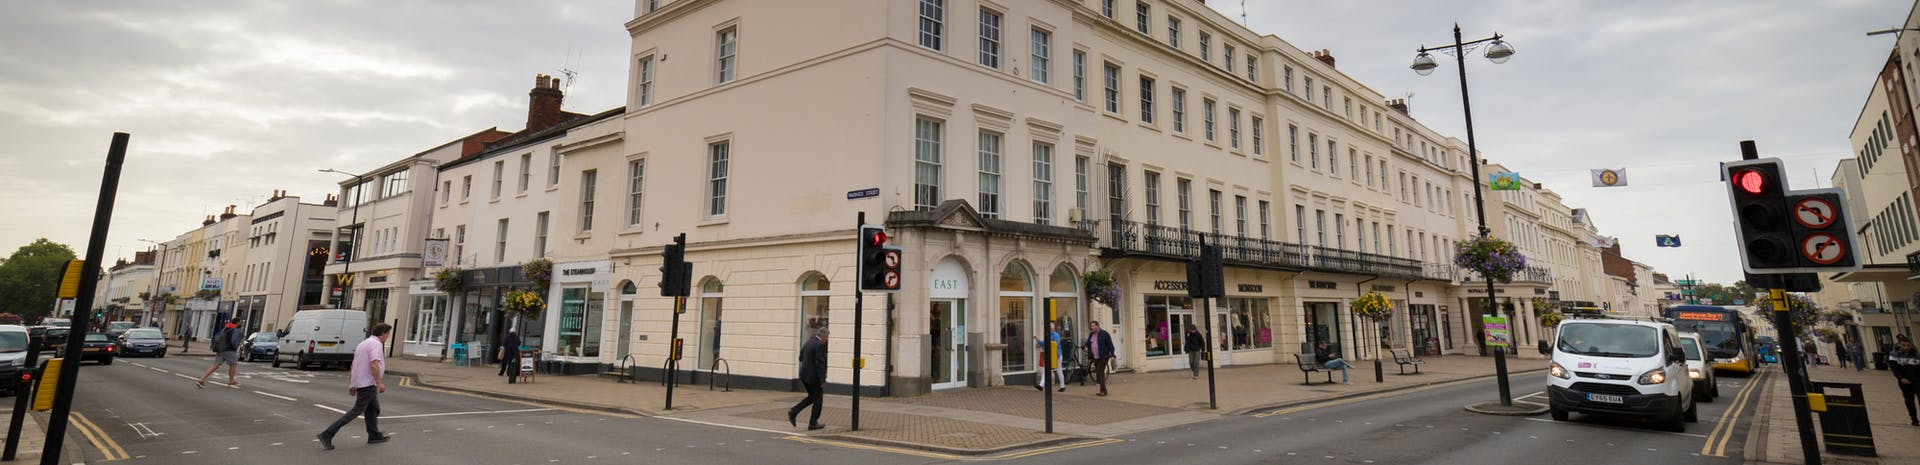 Picture of Leamington Spa